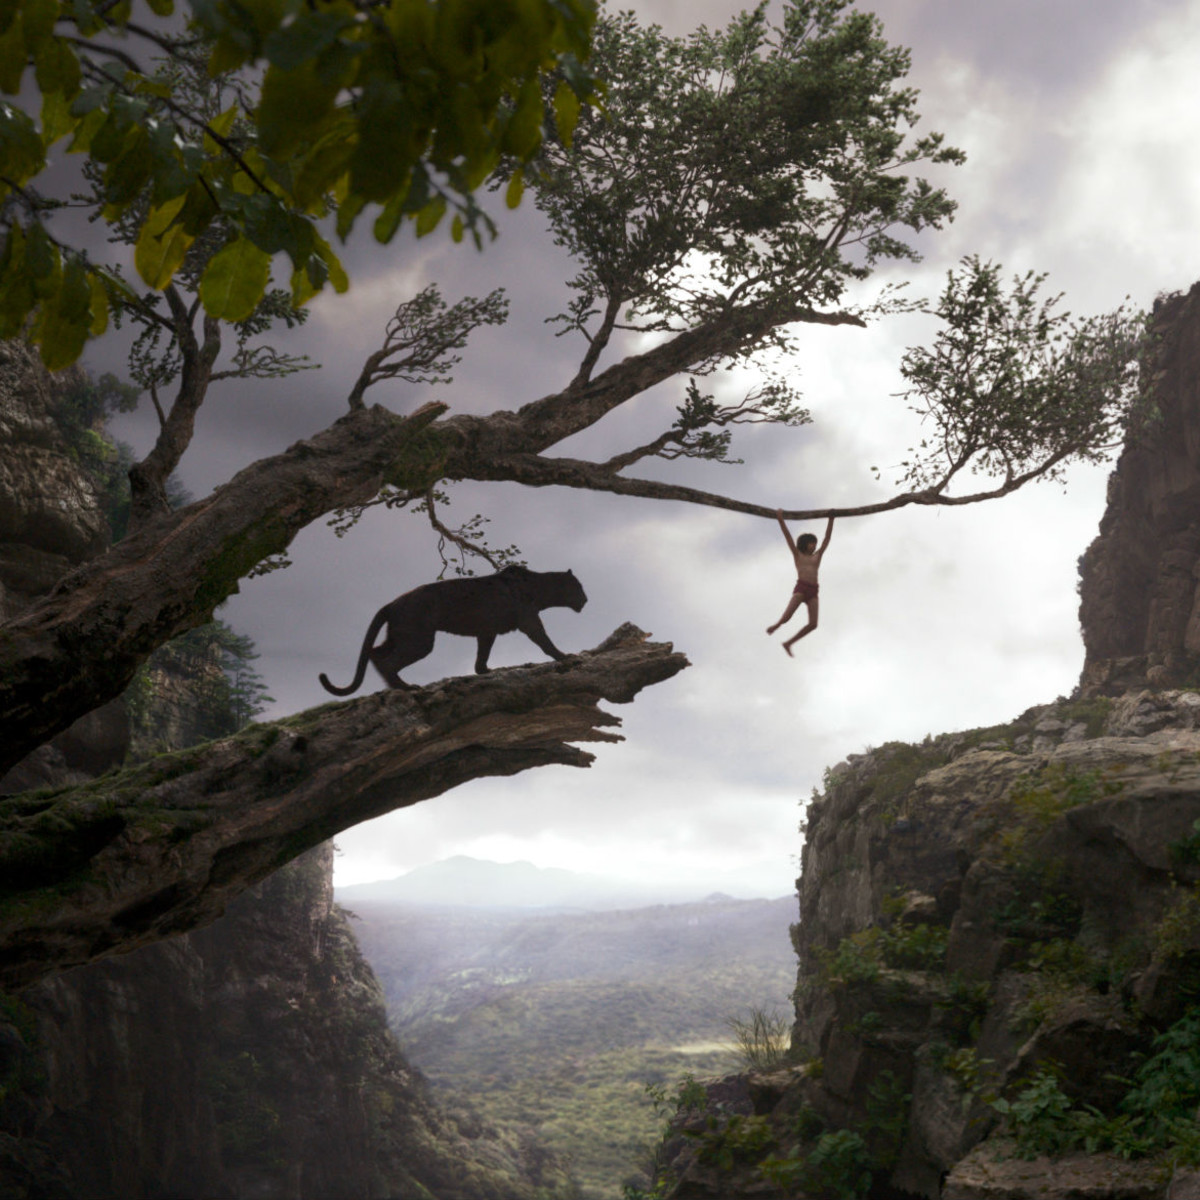 Scene from The Jungle Book